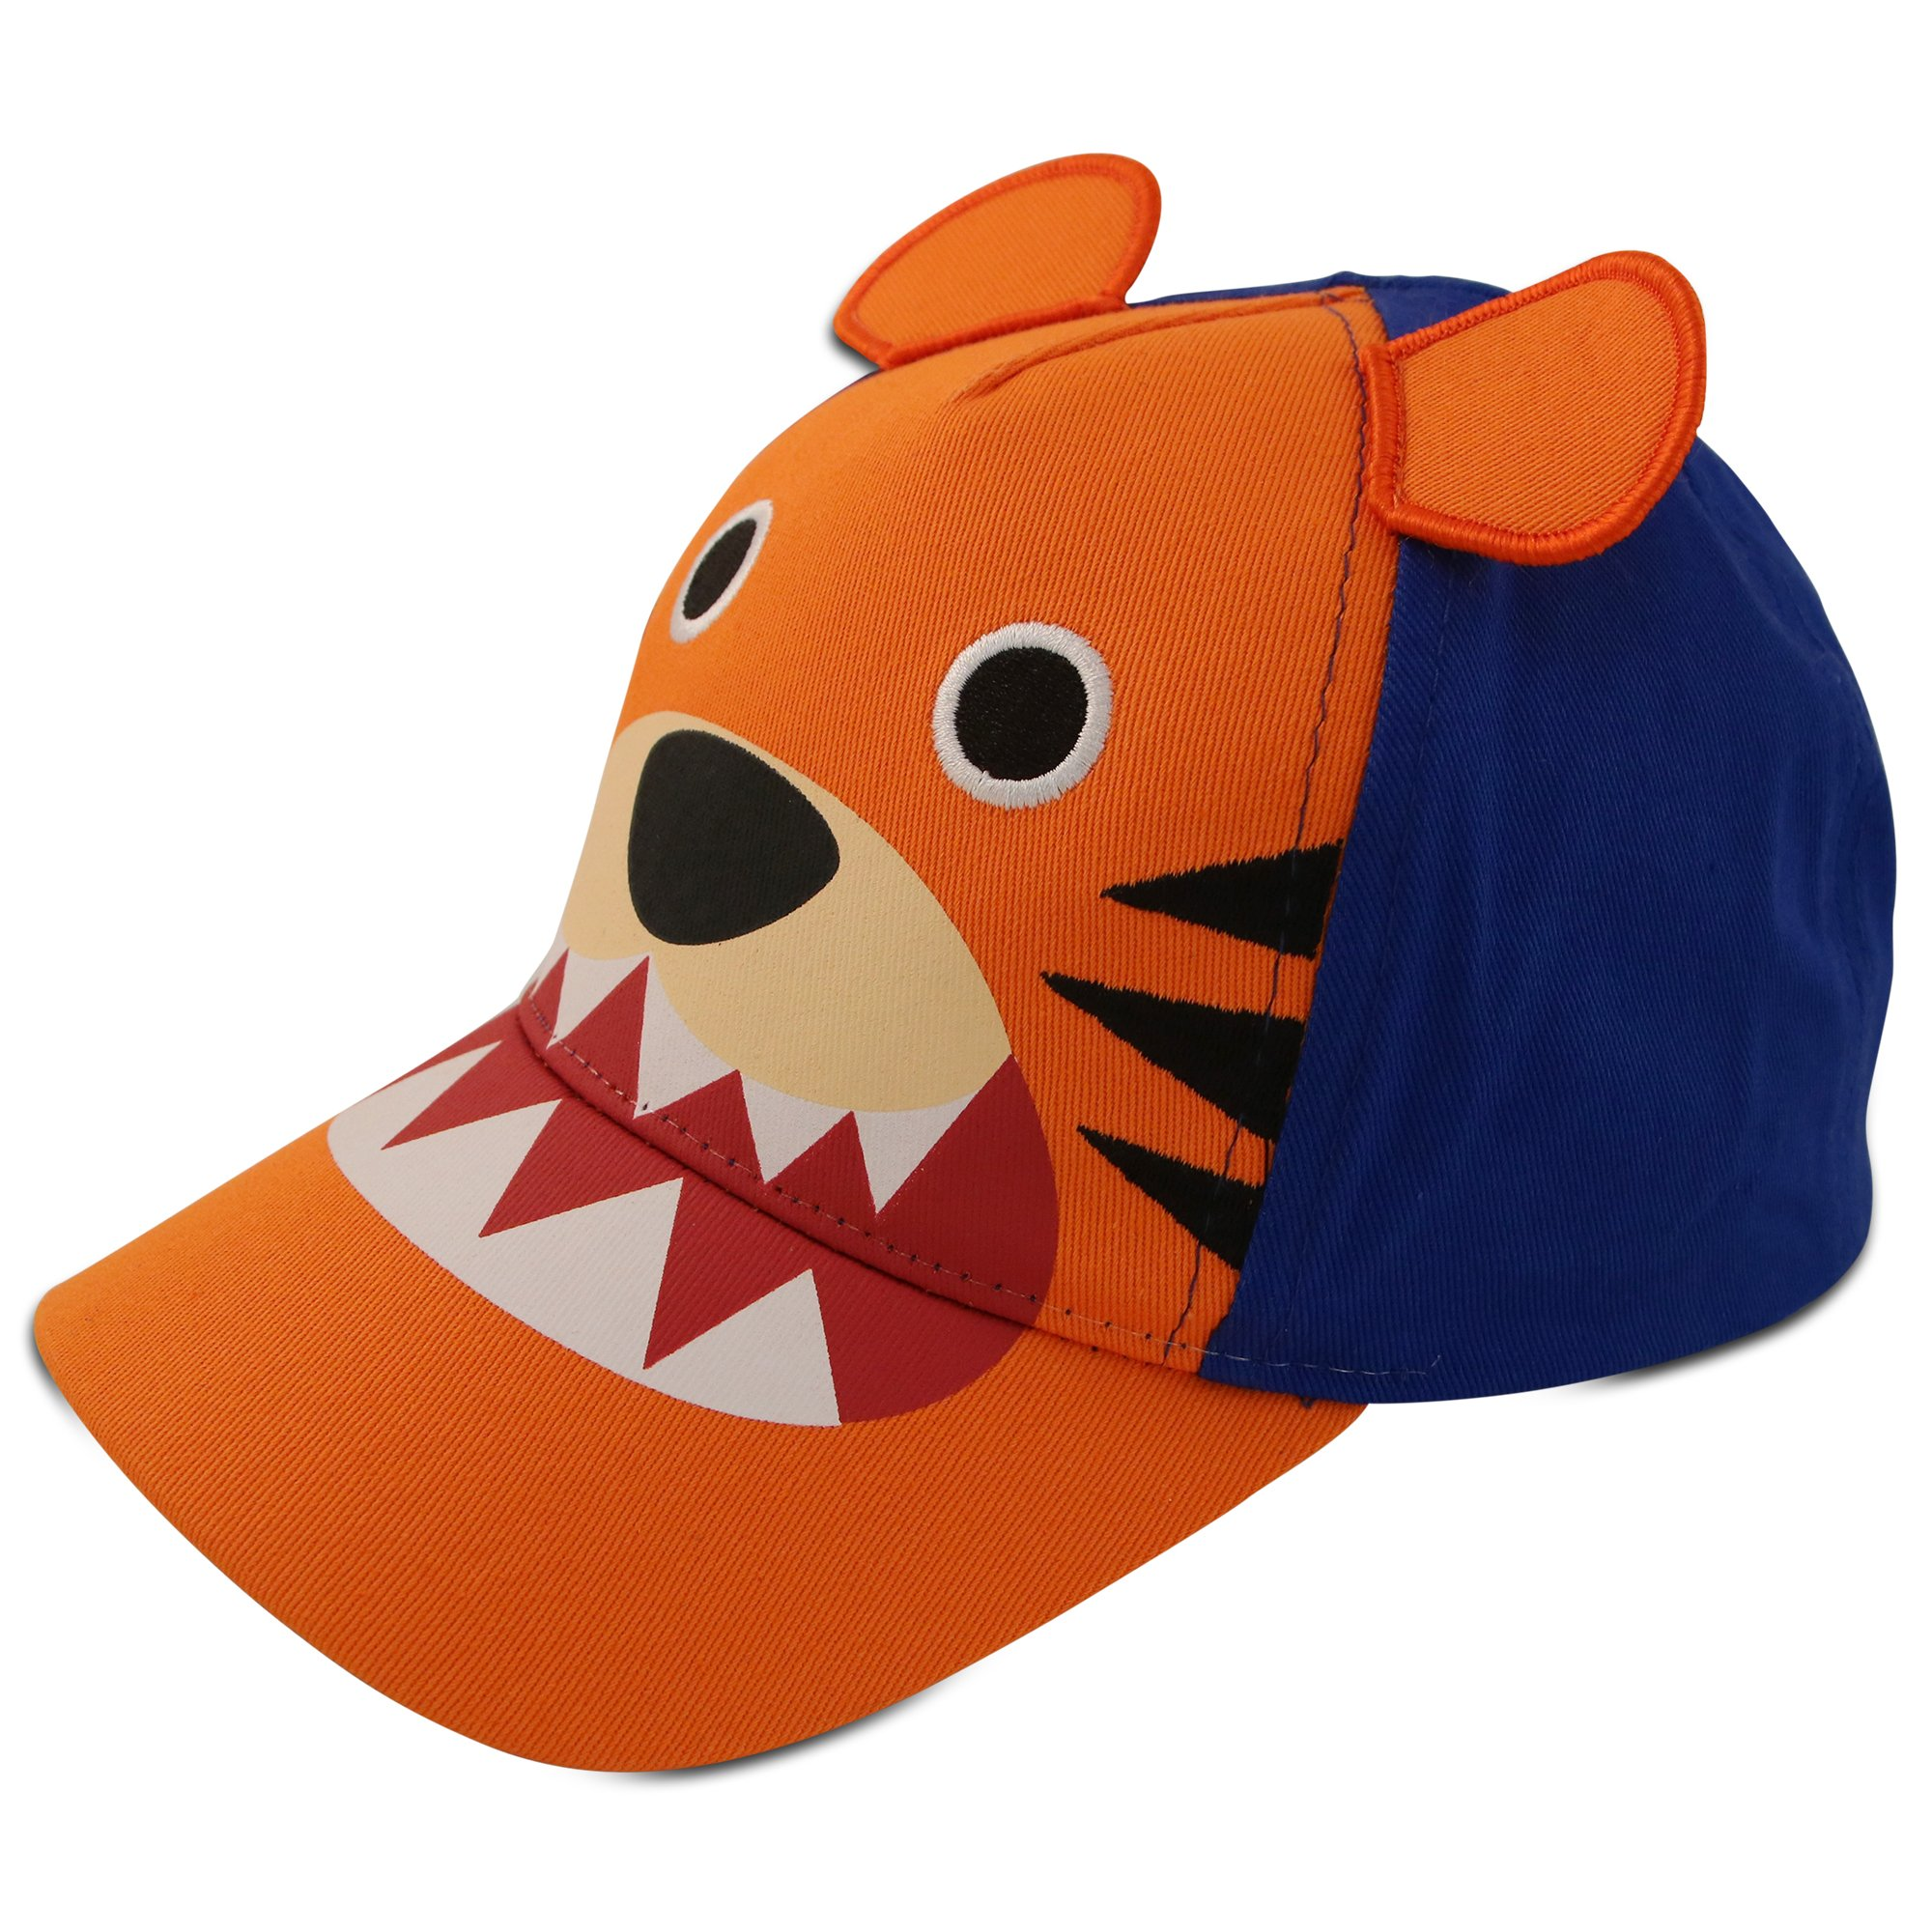 ABG Accessories Toddler Boys Cotton Baseball Cap with Assorted Animal Critter Designs, Age 2-4 (Tiger Design – Orange/Blue)